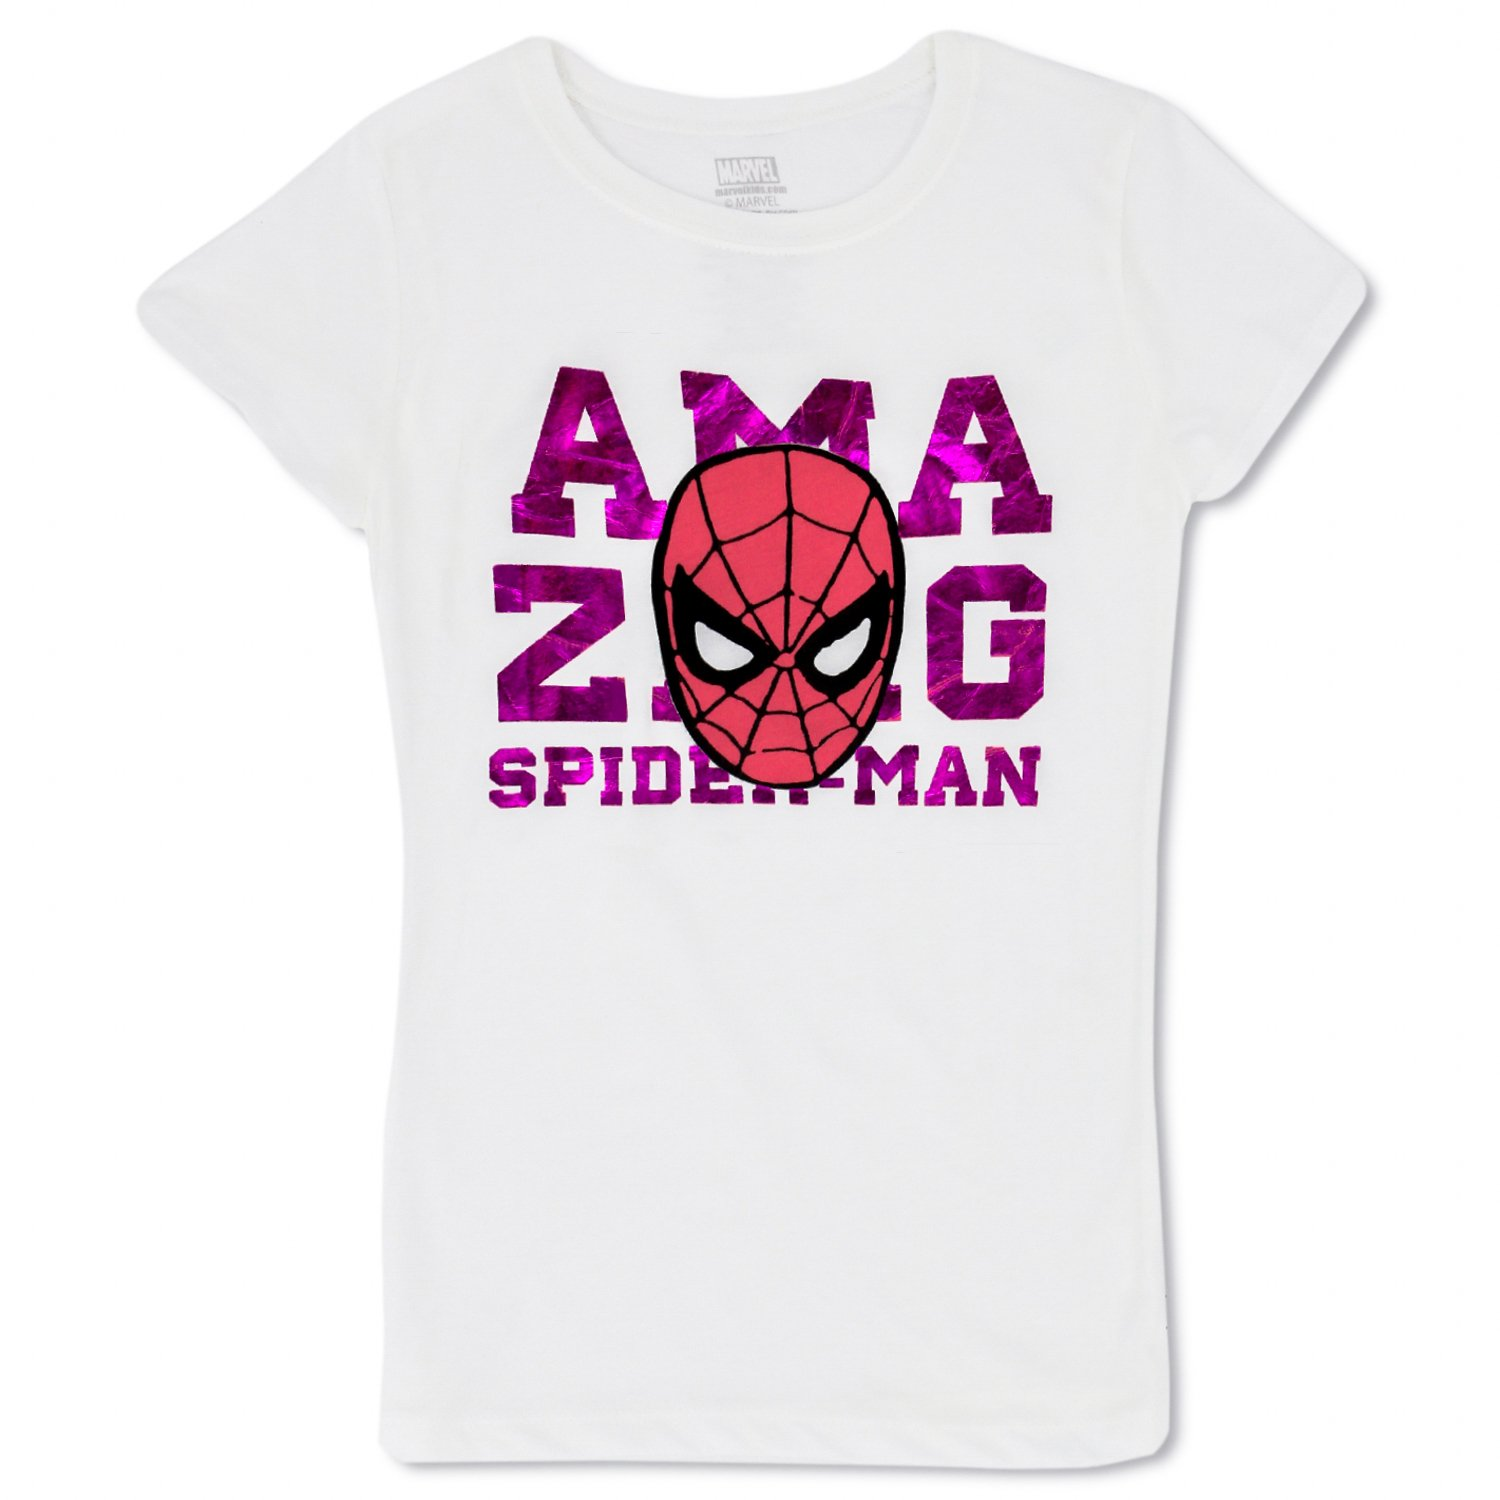 Girls Marvel Comics Graphic Tees - Spiderman, The Avengers, Guardians of The Galaxy (White Foil, Medium)